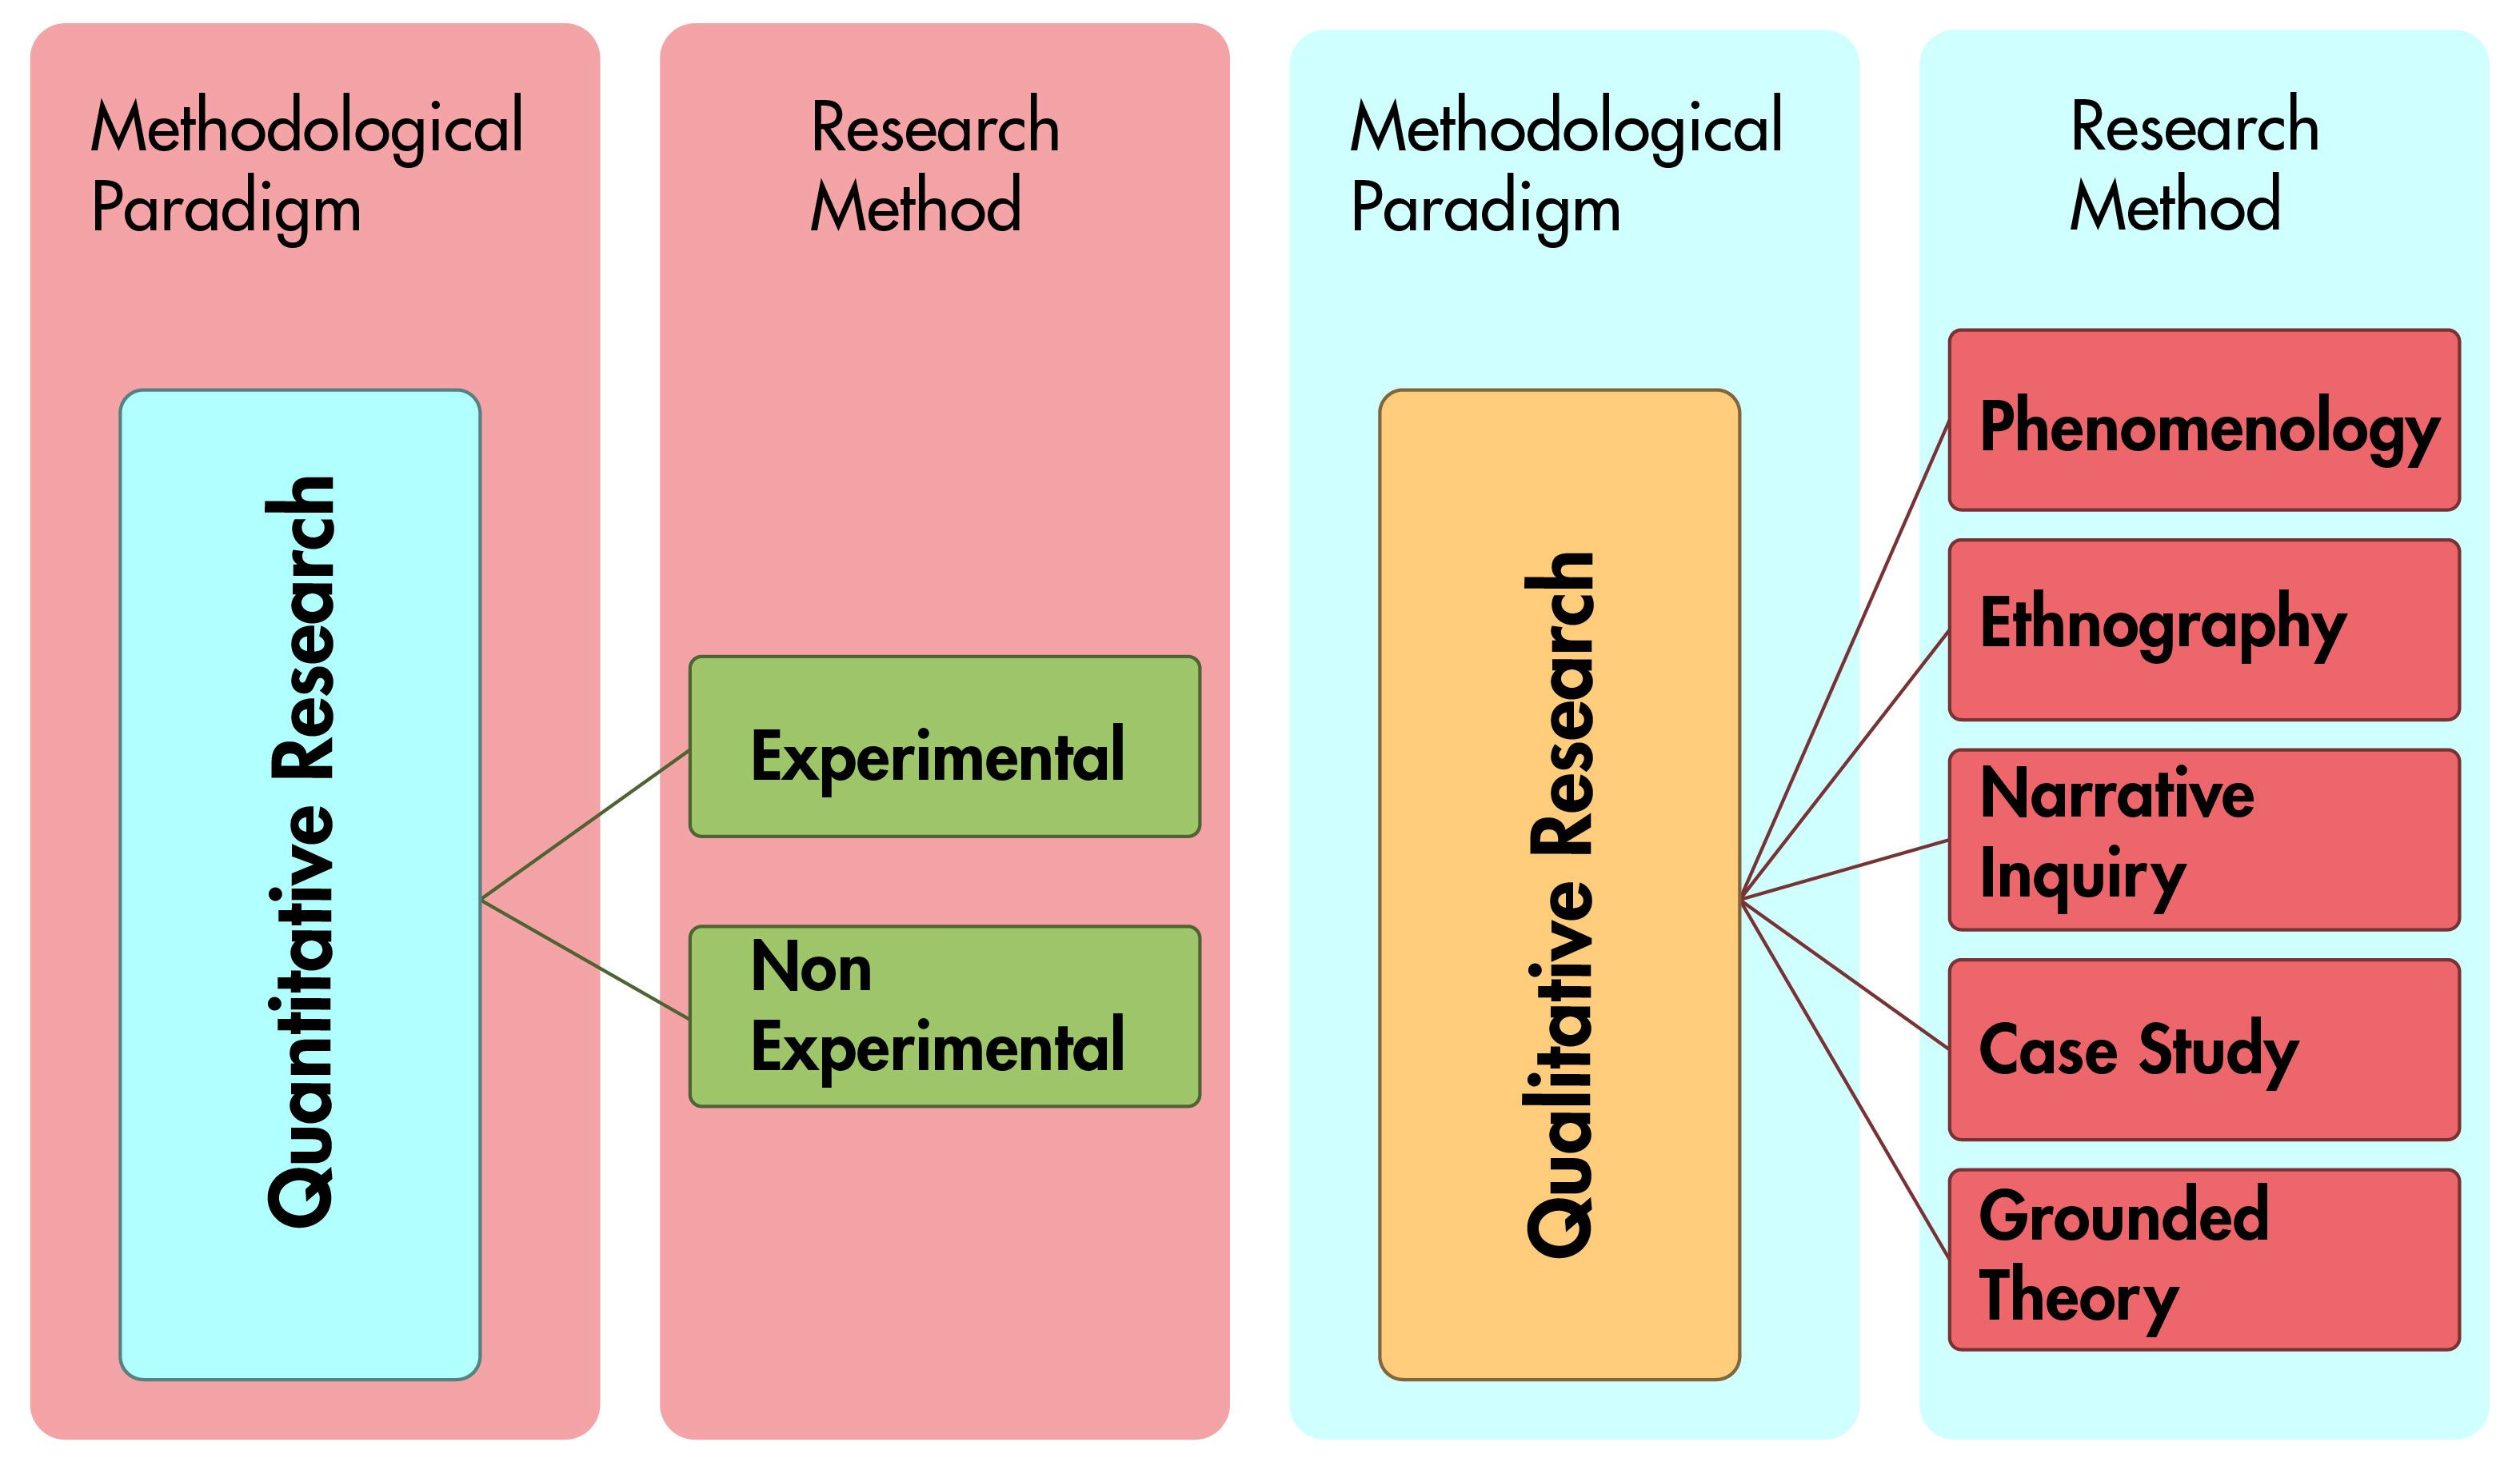 Parallel Graphic Of Methodological Paradigm And Research Methods